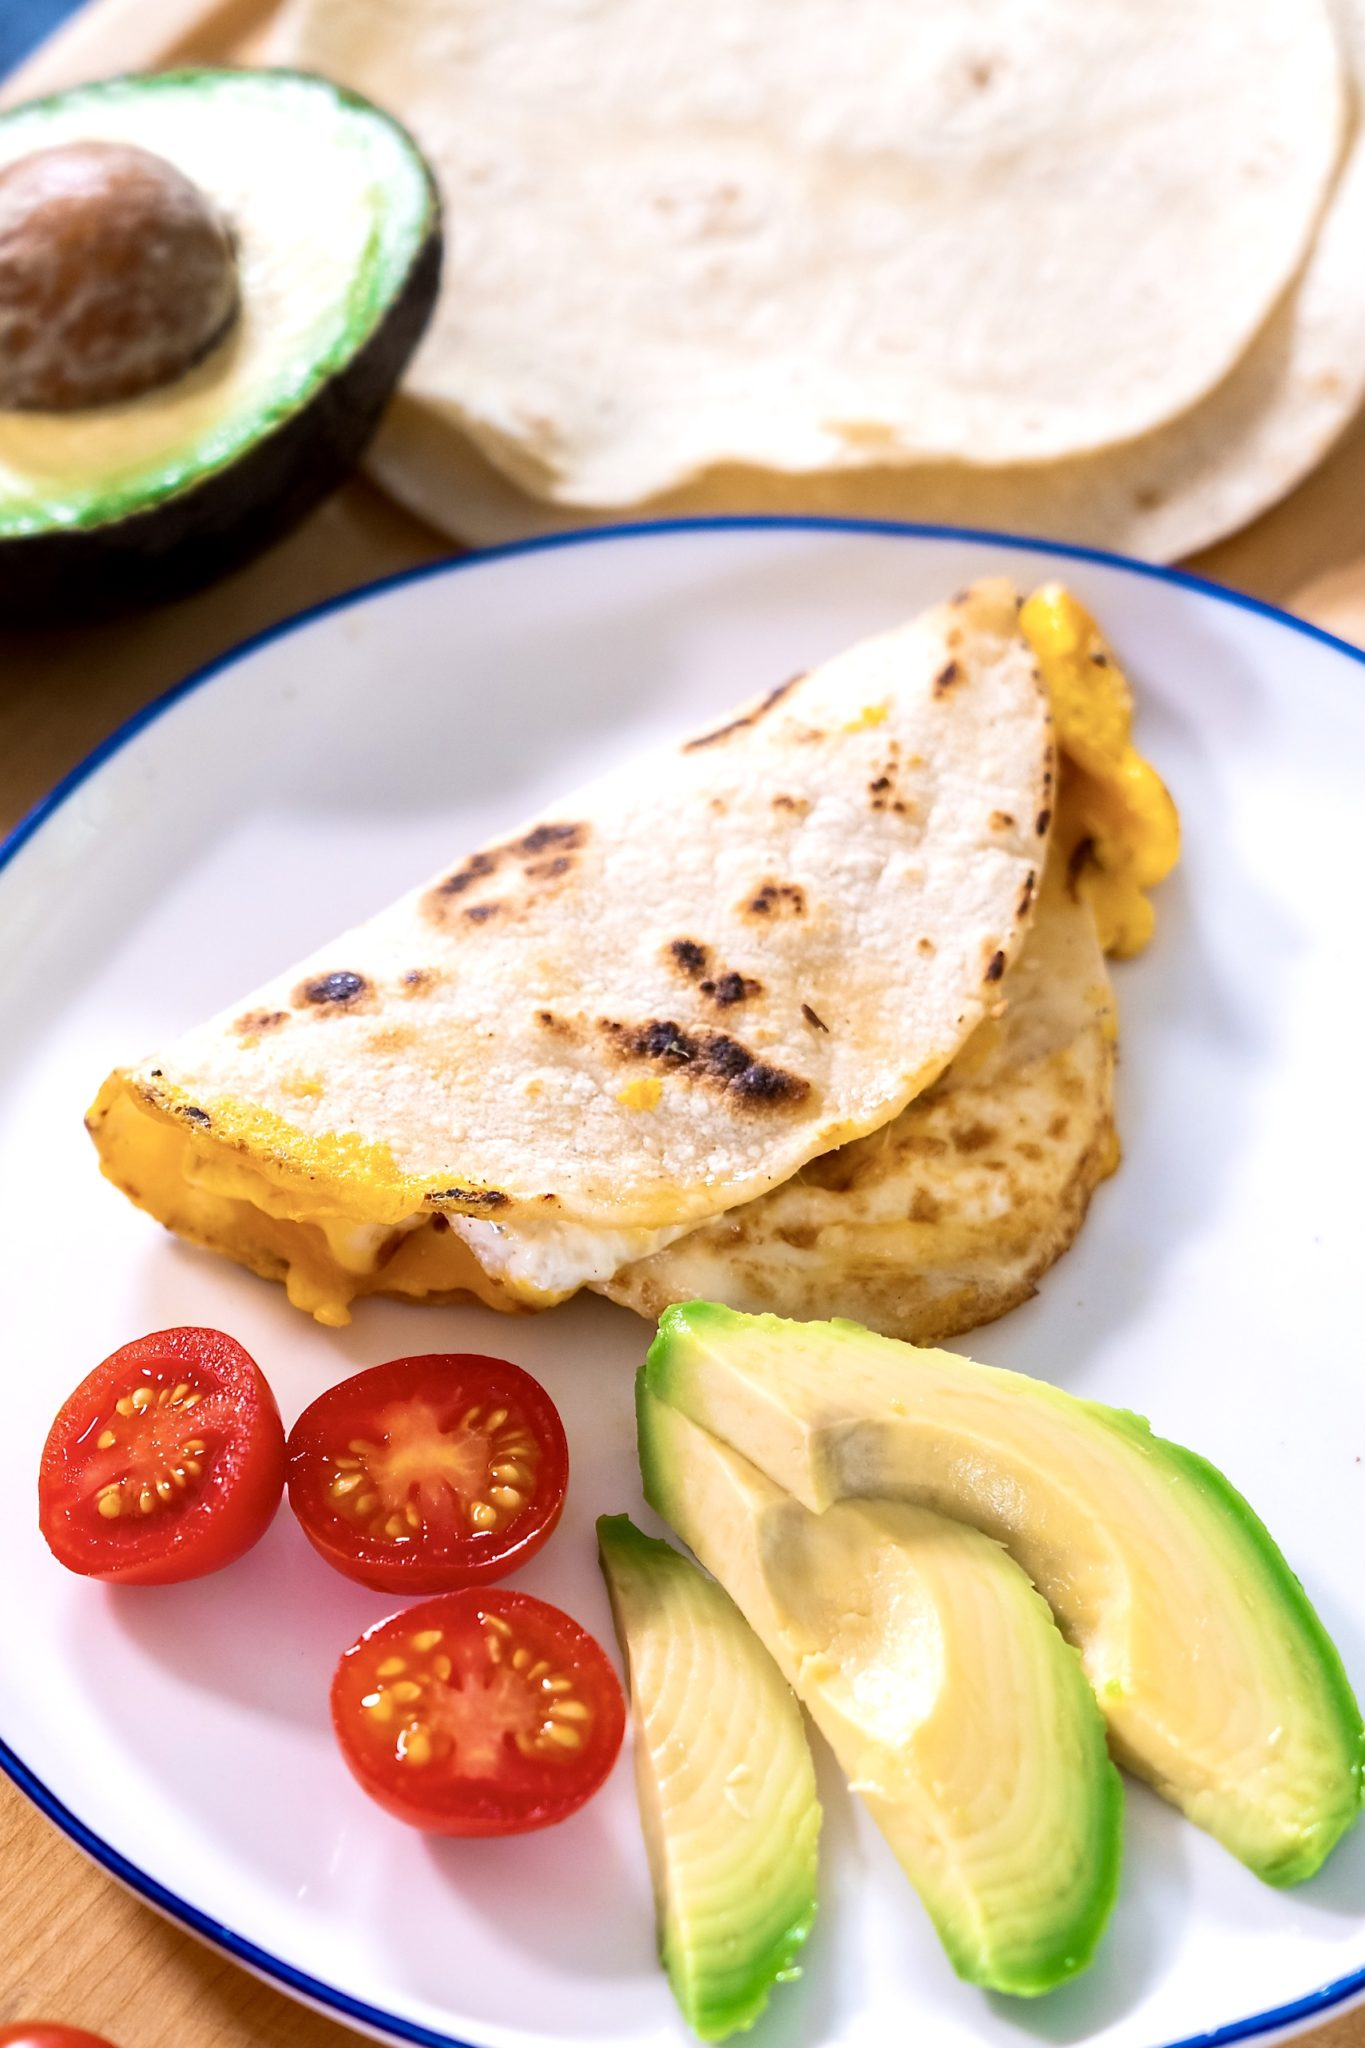 Protein-rich, economical, and super satisfying, this speedy egg taco hits the spot any time of day and can be made with three simple ingredients.